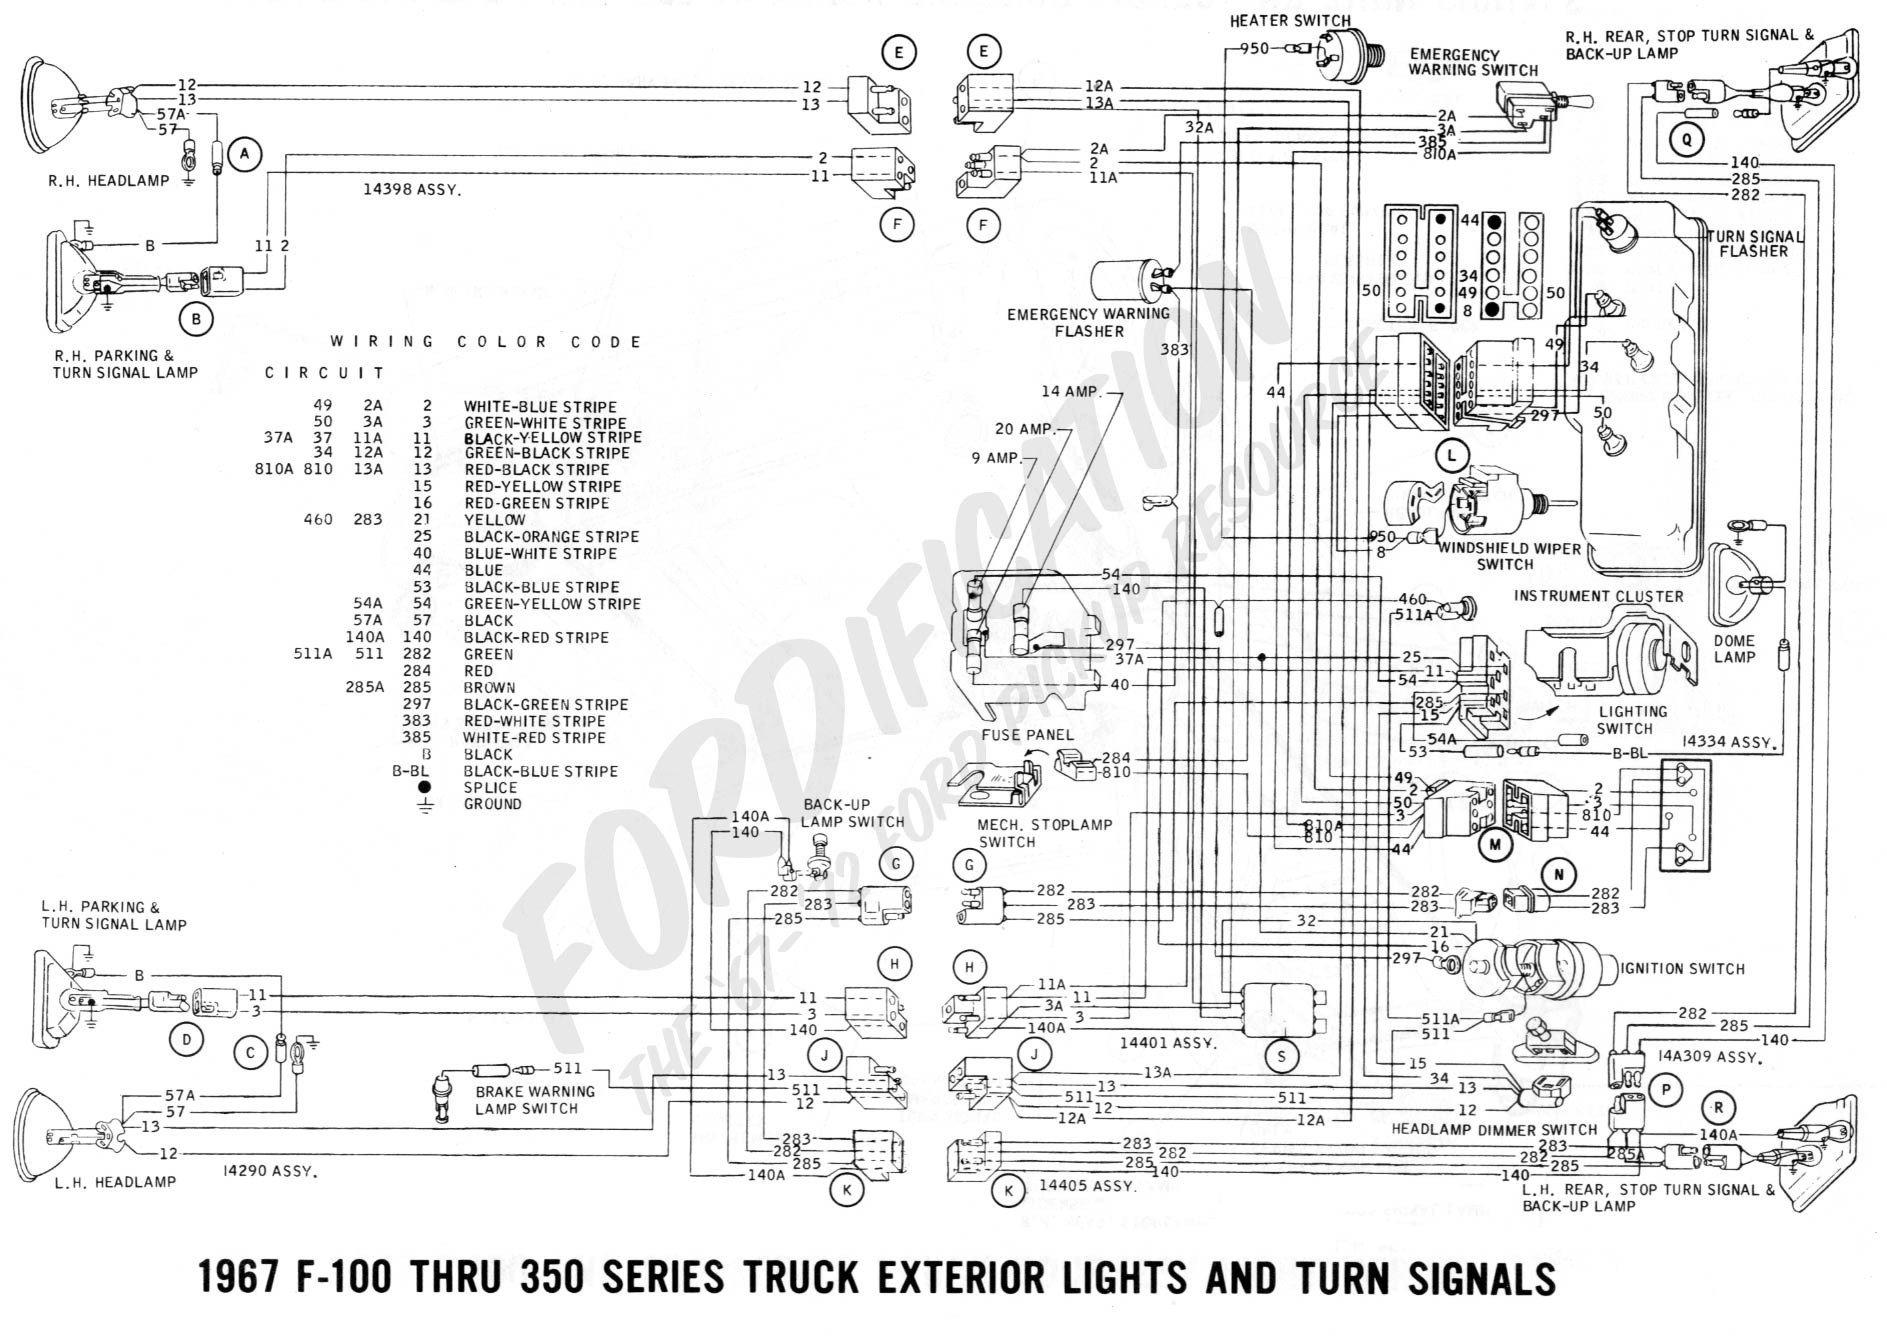 hight resolution of 1979 ford f150 turn signal wiring diagram electrical work wiring ford f 250 wiring diagram